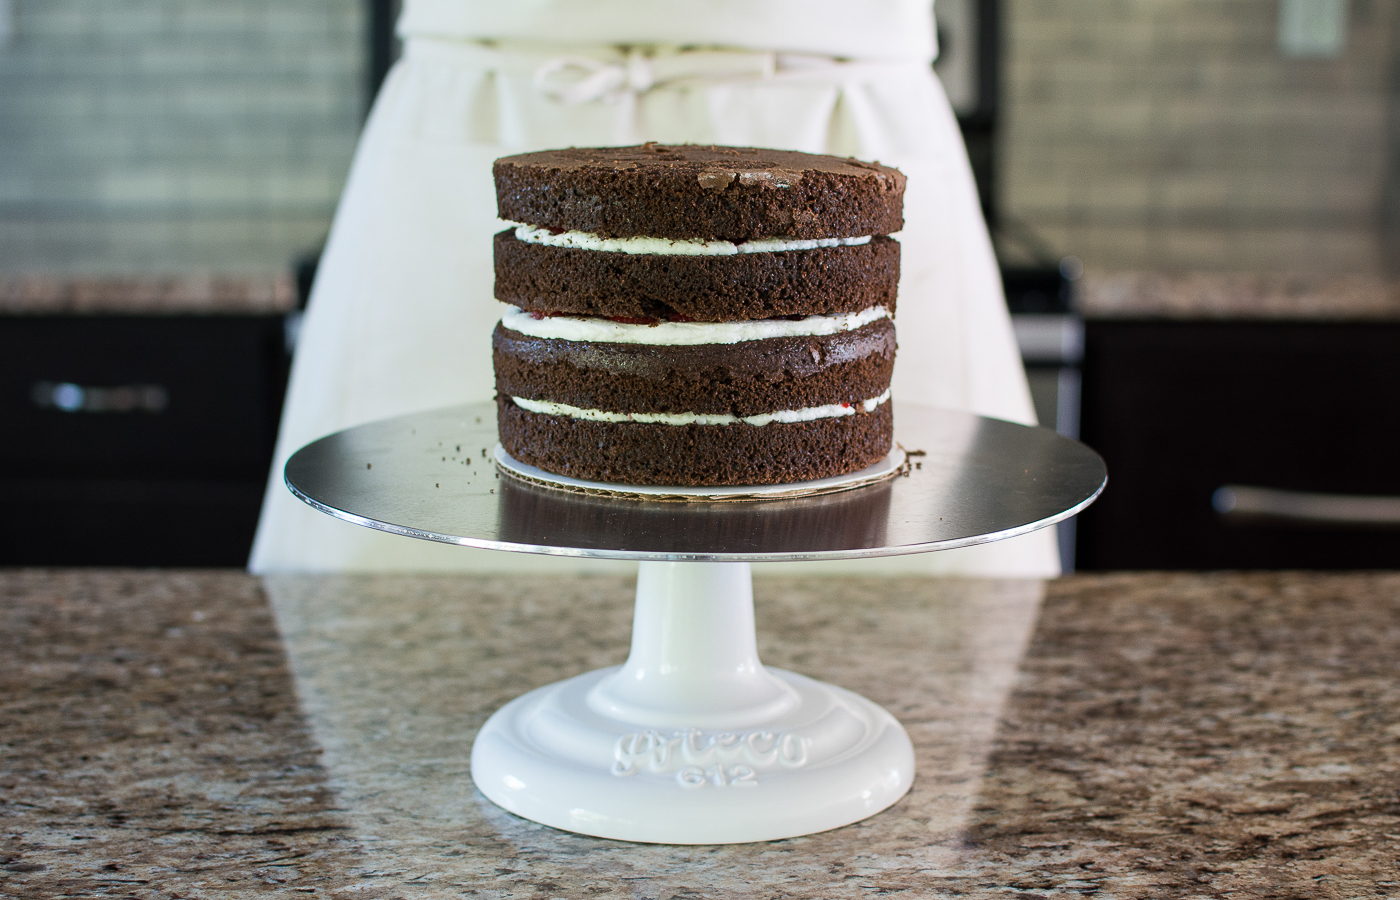 Filling & Stacking the Cake